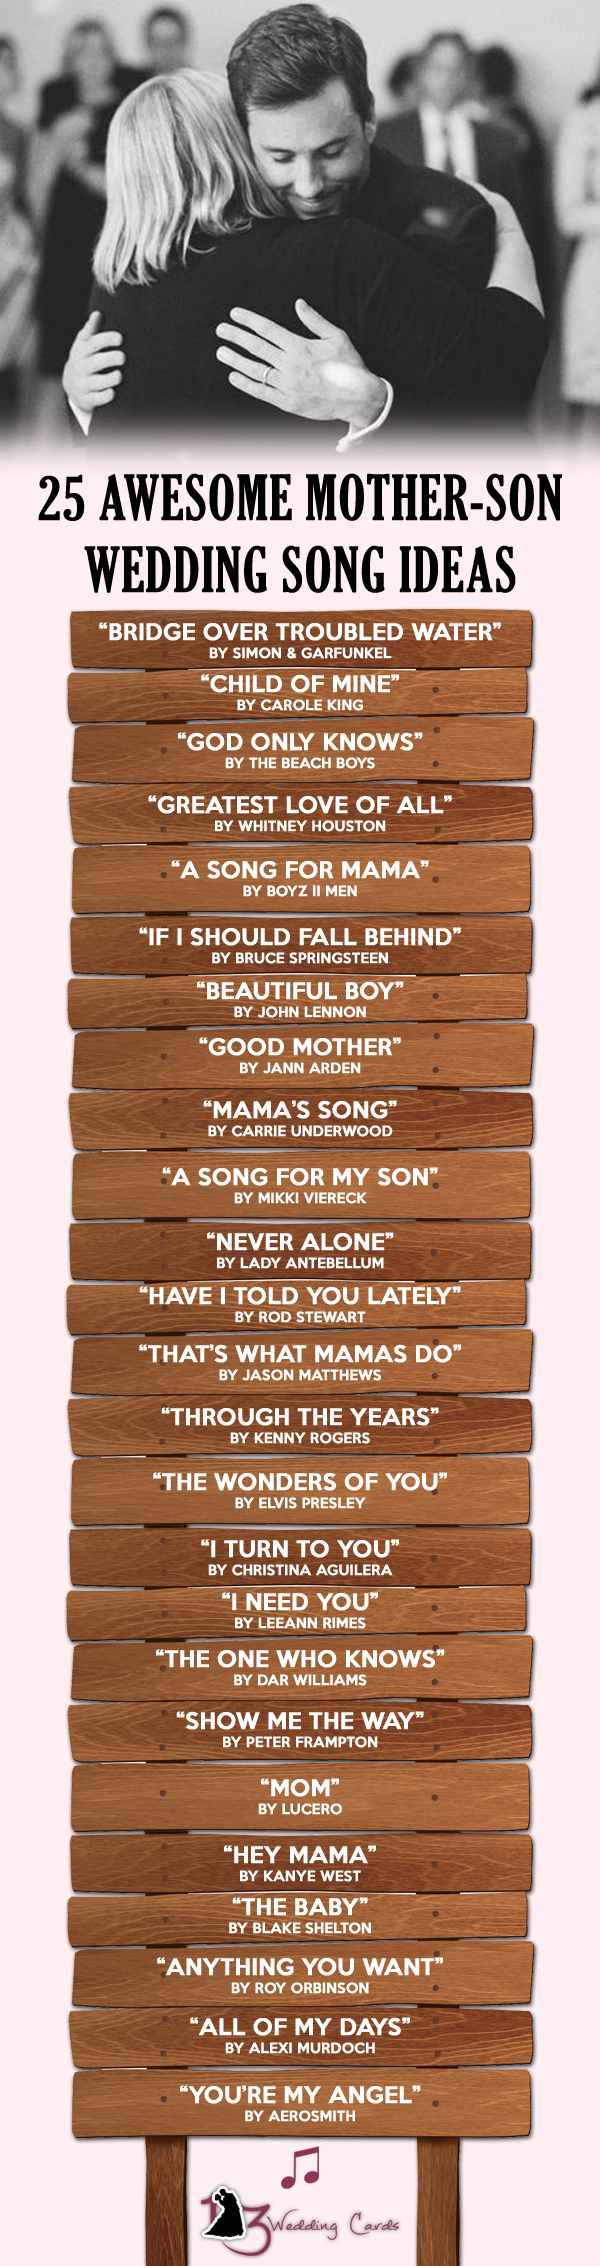 25 Awesome Mother-Son Wedding Song Ideas If you want to make your mother feel super special on your wedding then here is a list of 25 awesome mother son wedding songs that will make your mother go \u2018awe\u2019 with admiration. #musicsongs